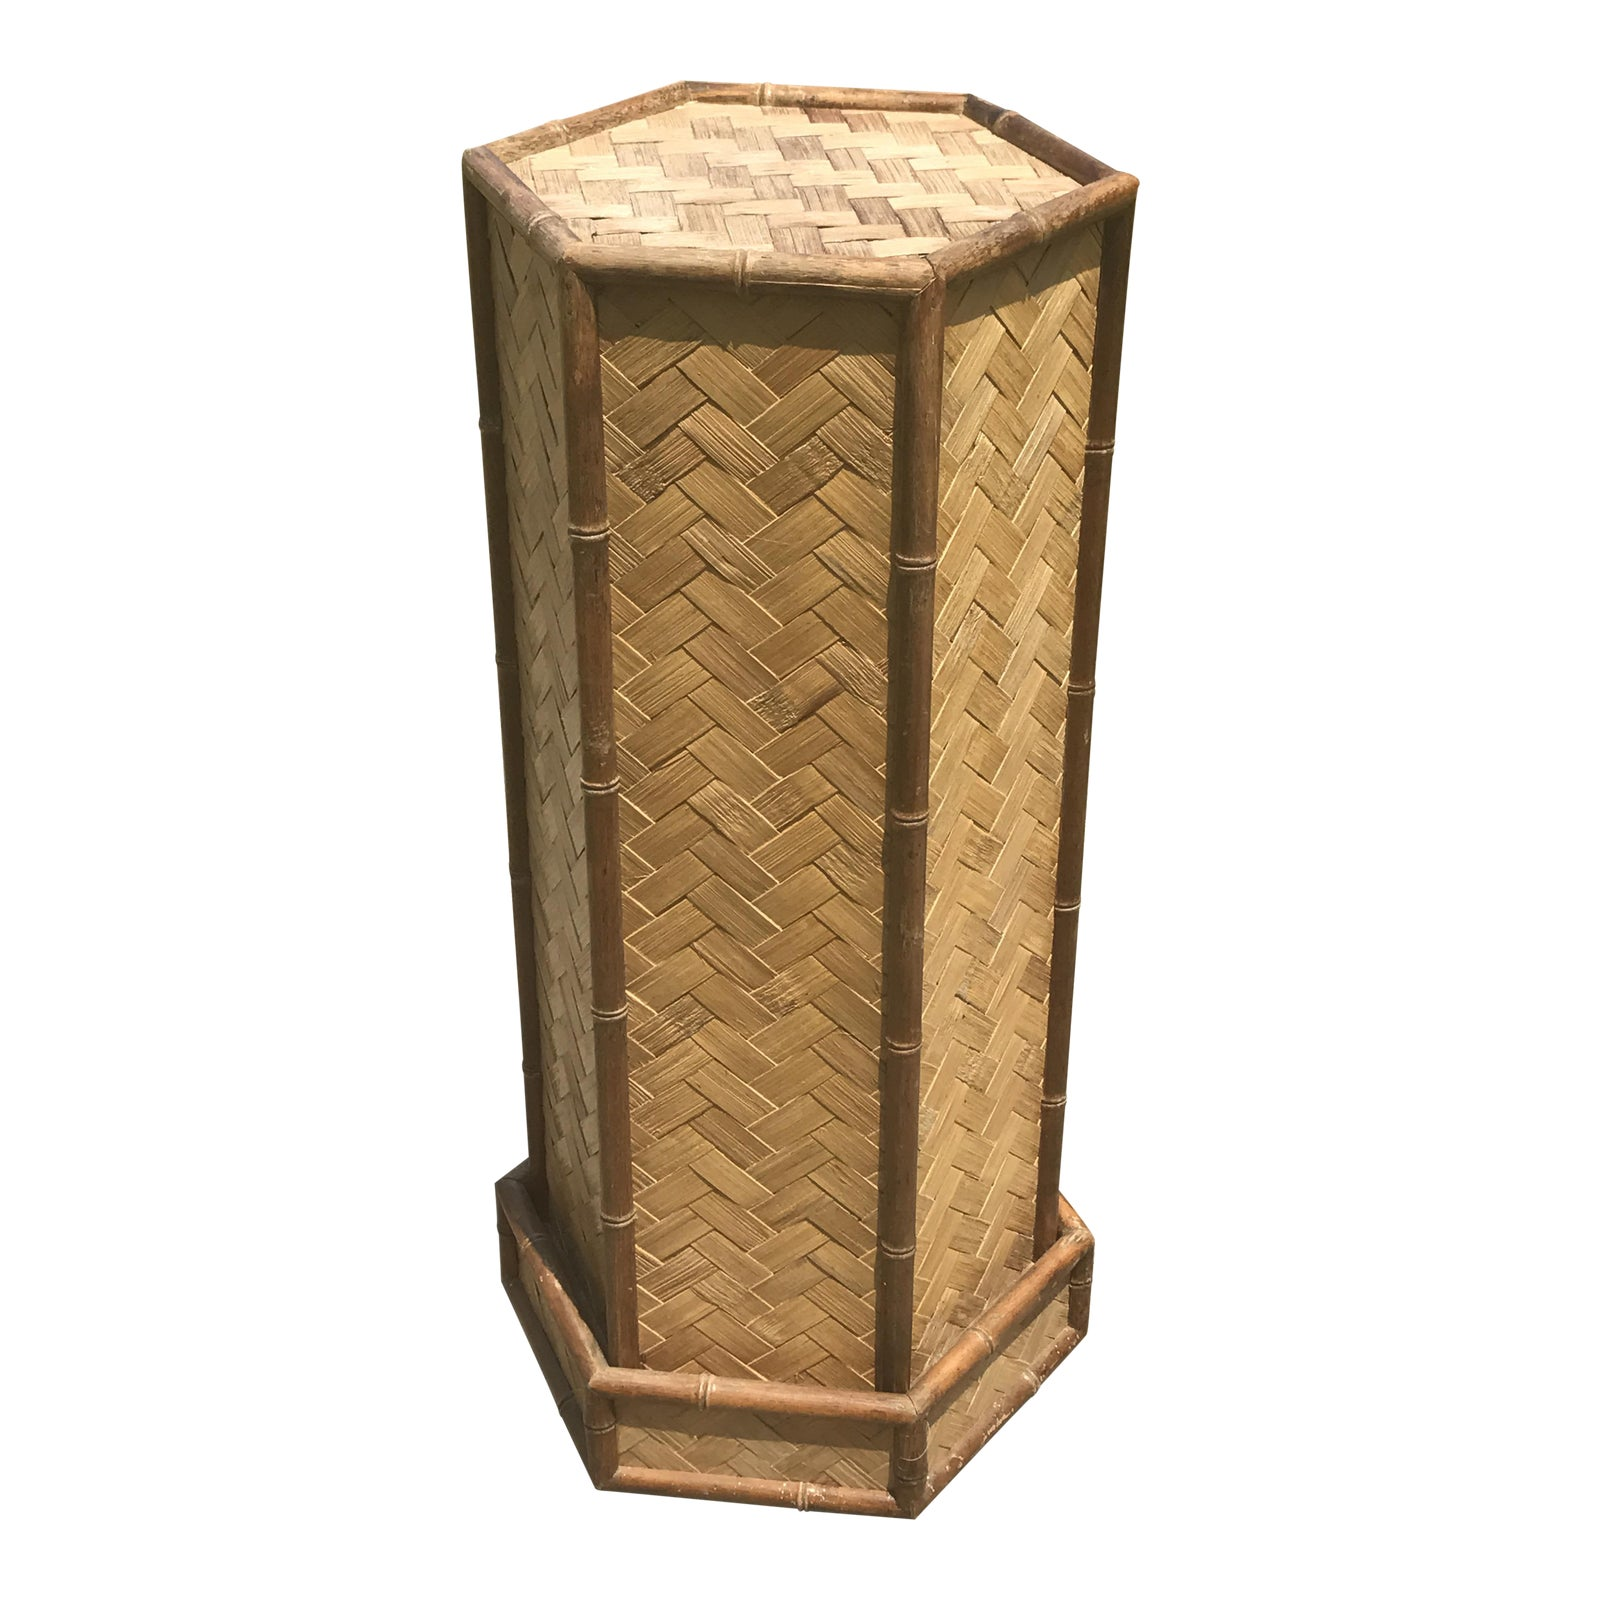 f01931138d0c Rolling Woven Bamboo Pedestal Plant Stand   Chairish